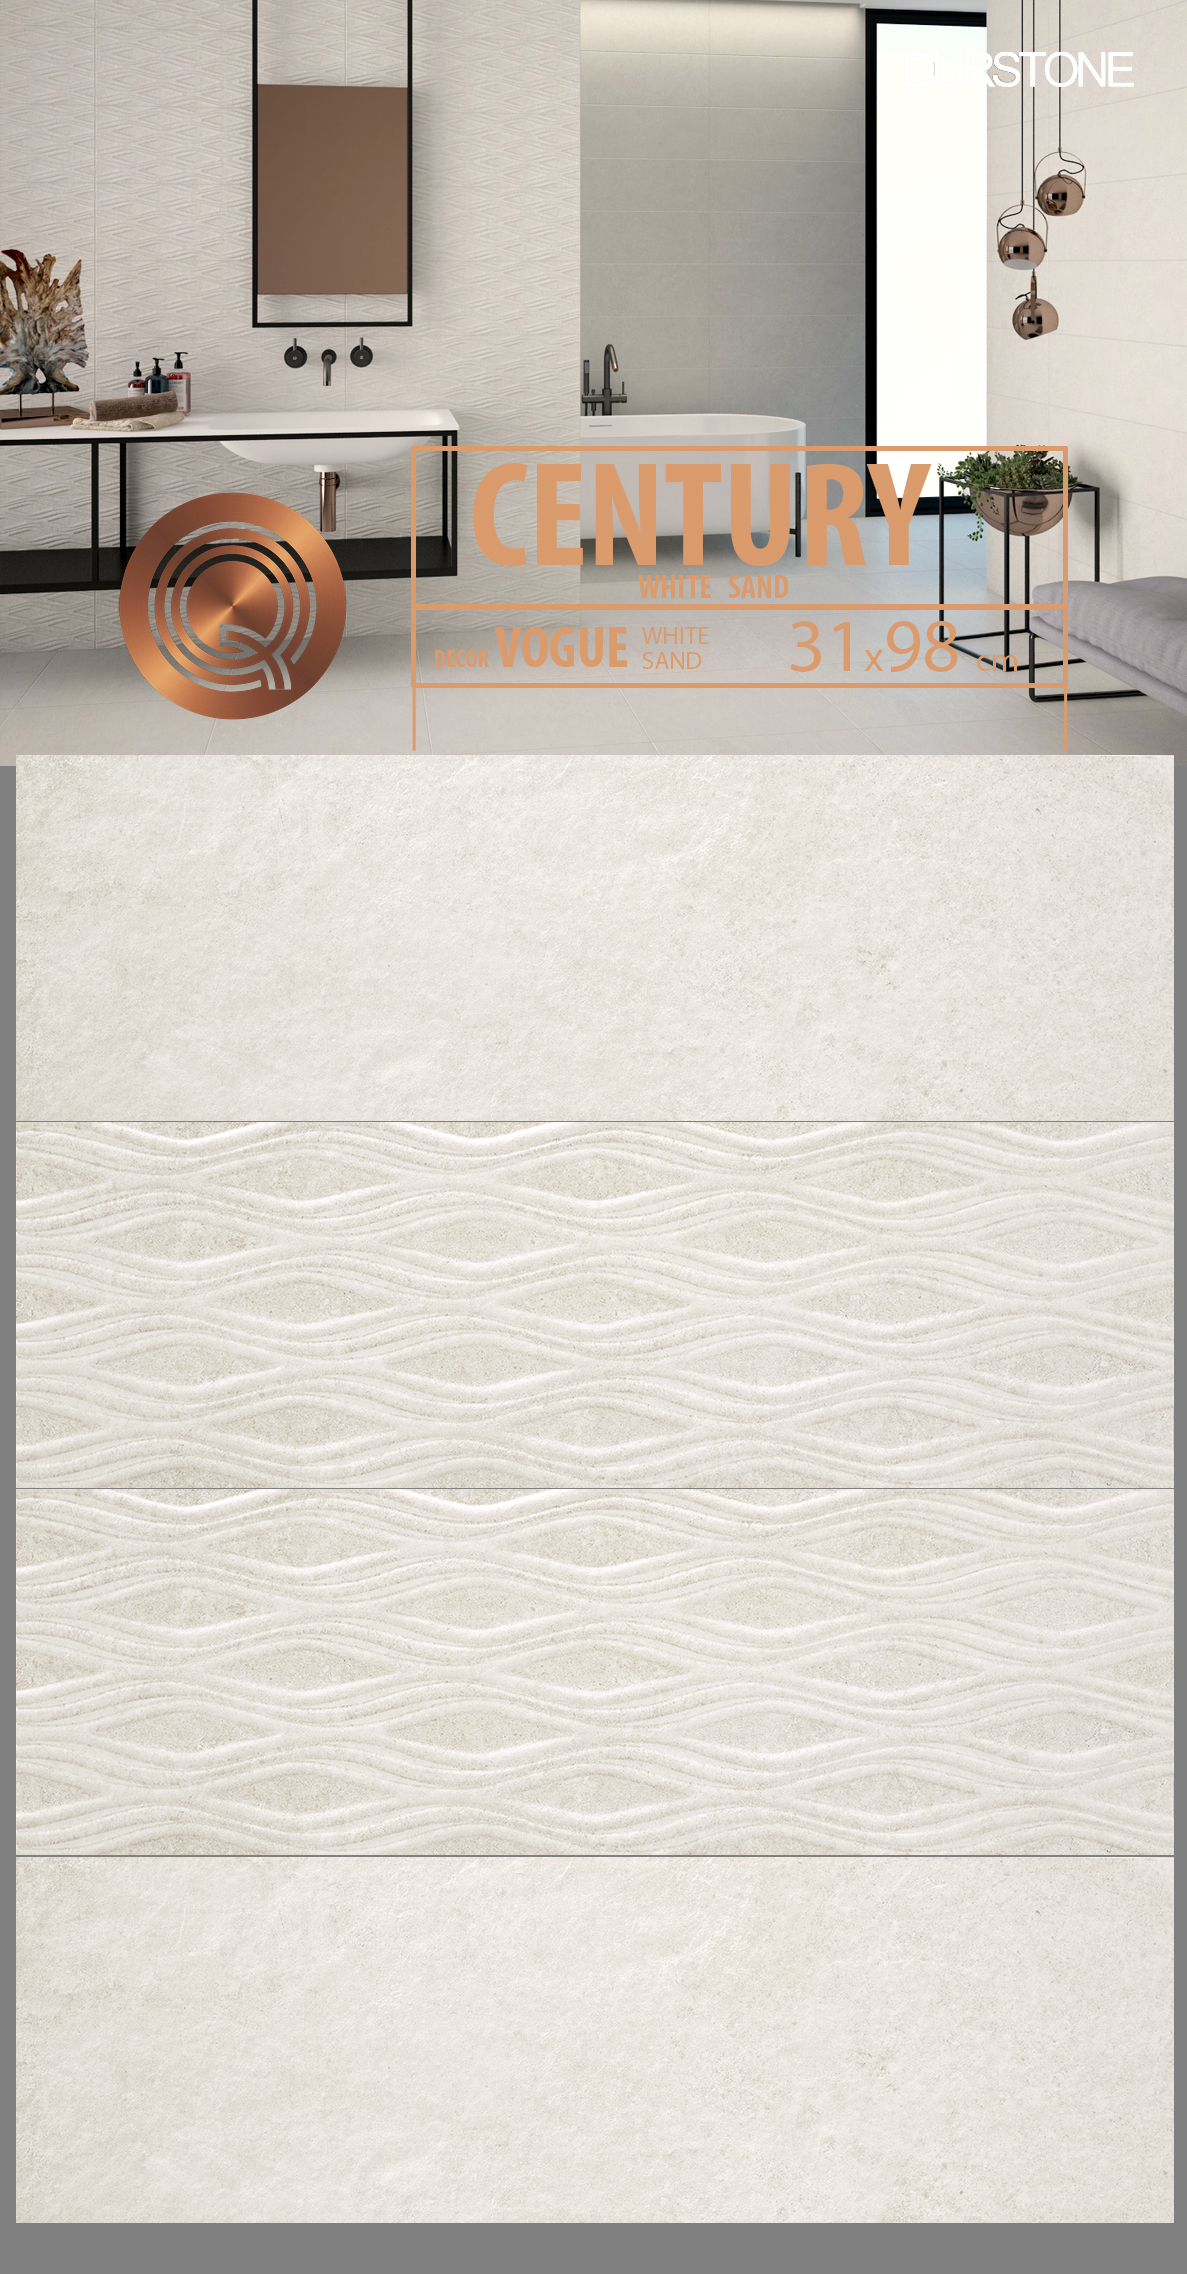 6118 RV PANEL MIX CENTURY / VOGUE WHITE Cod. 6118